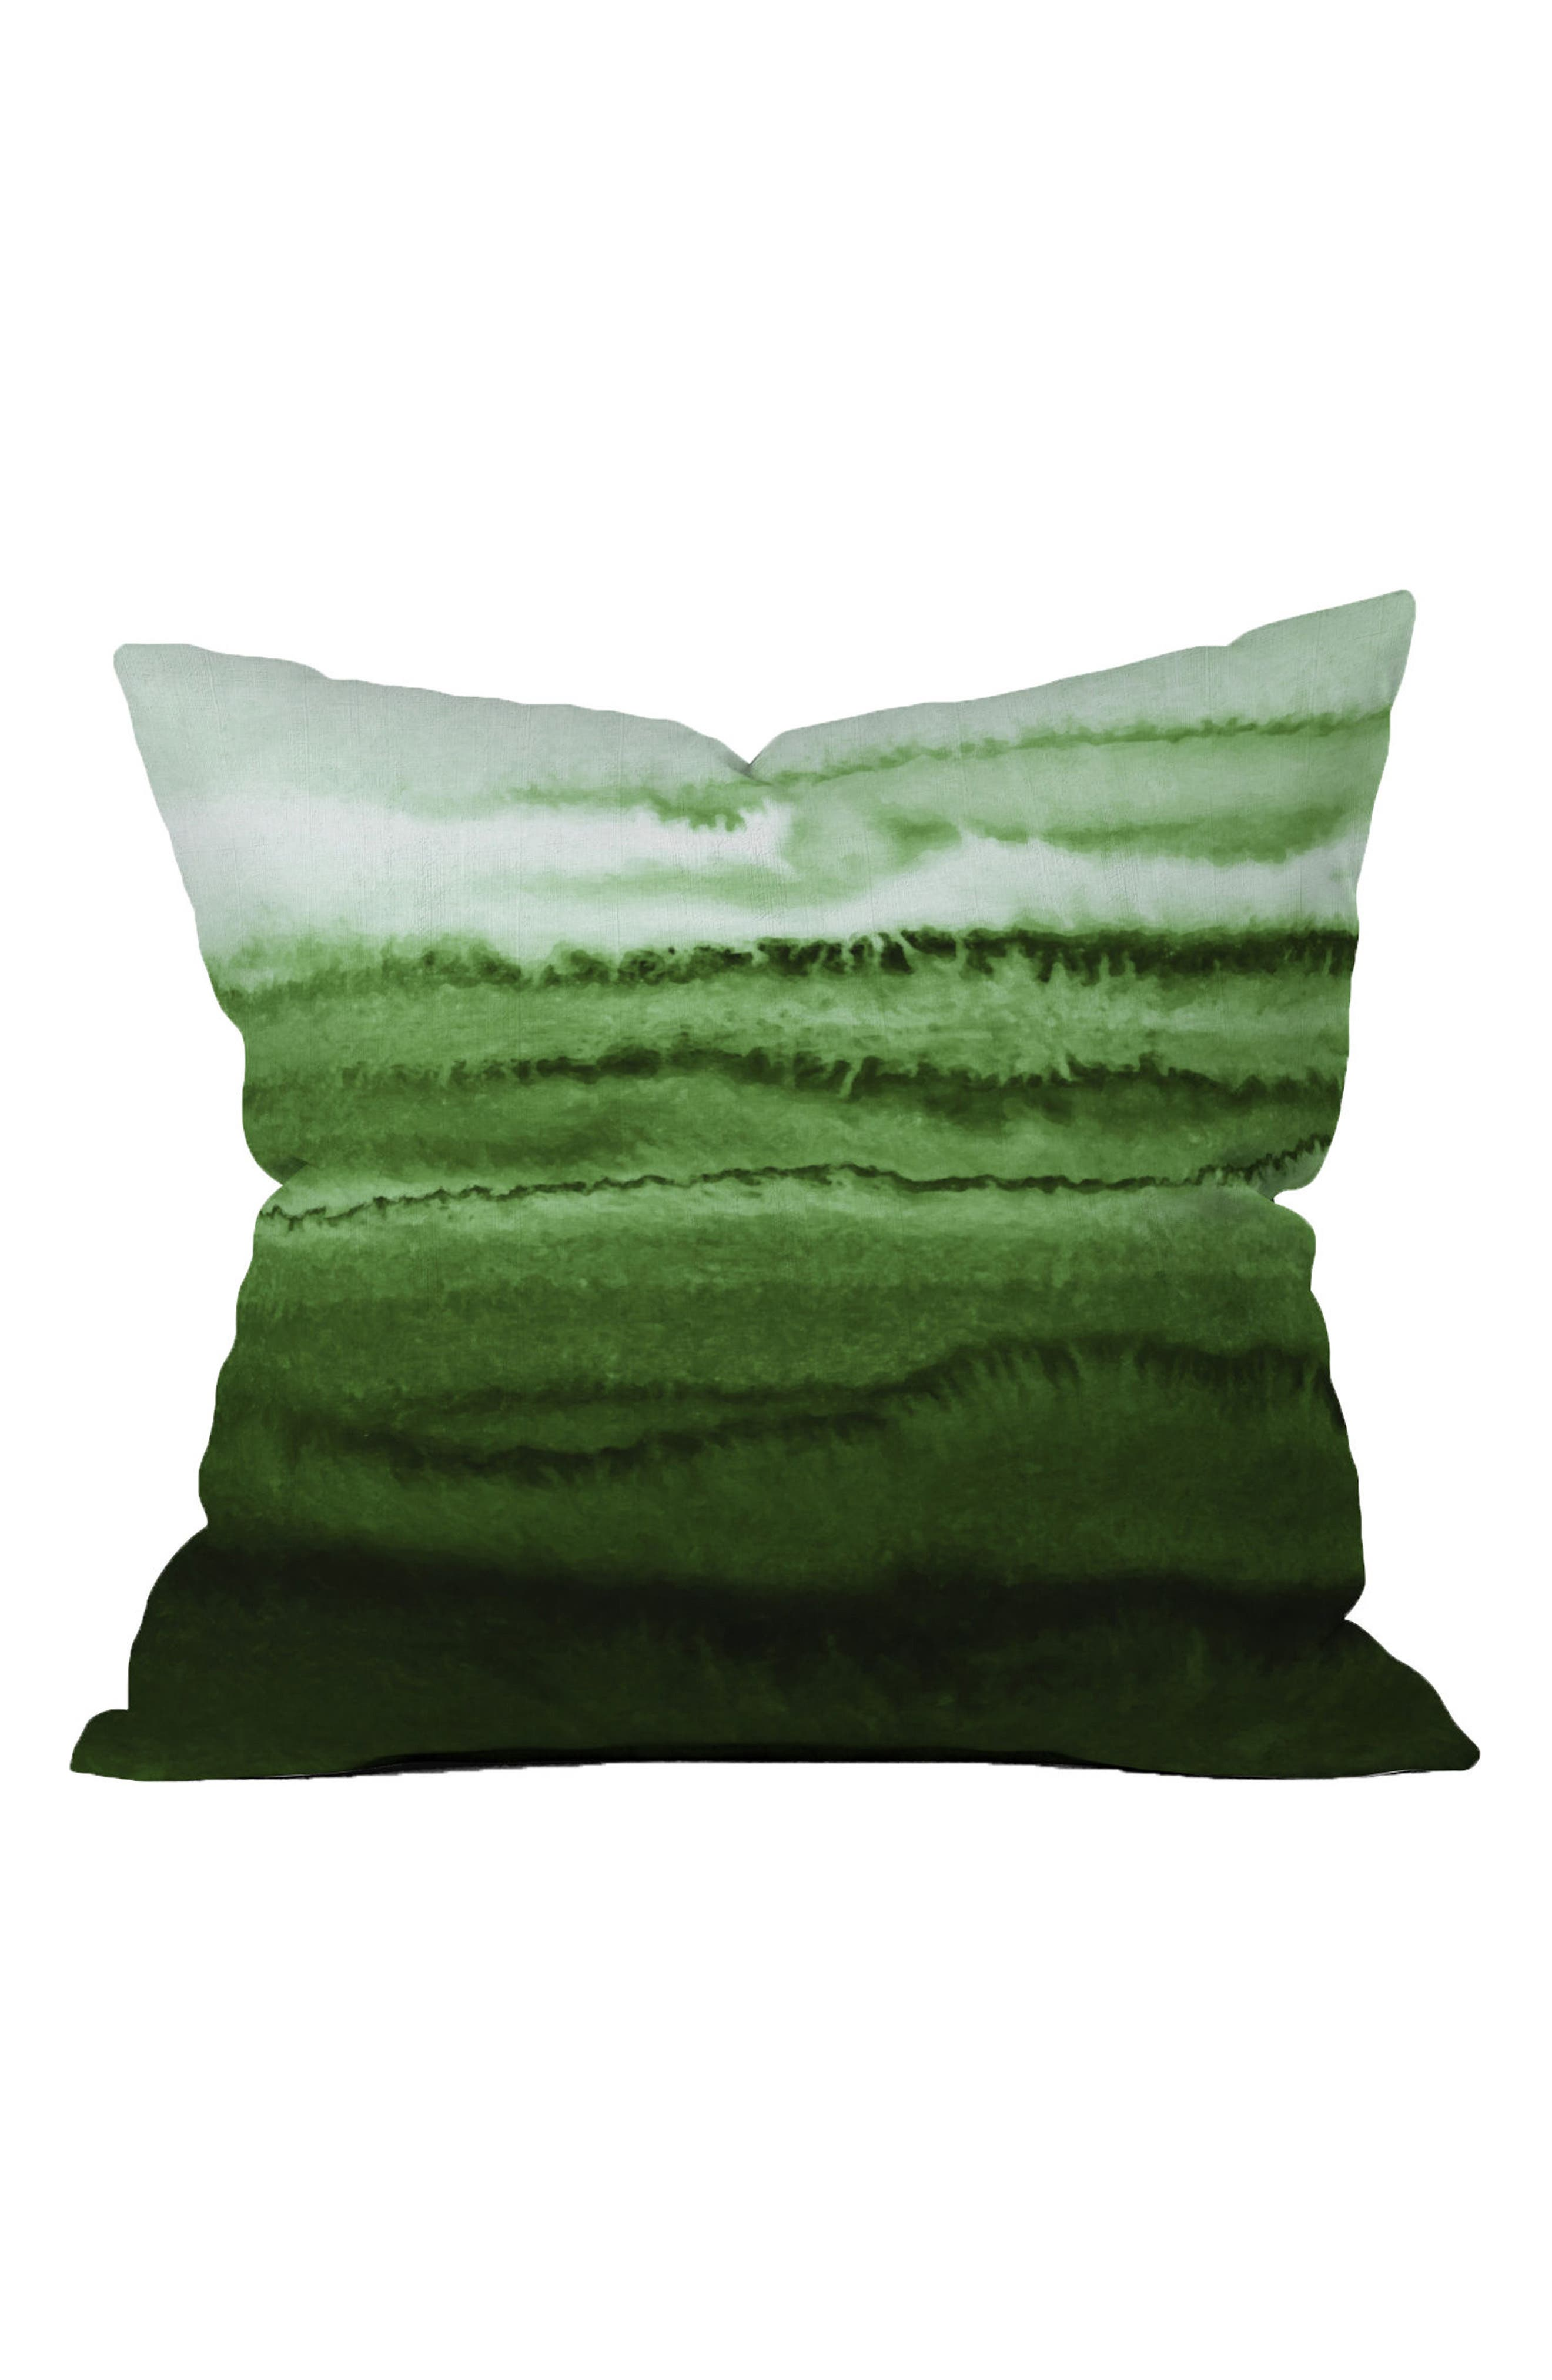 Main Image - Deny Designs Monika Strigel Accent Pillow